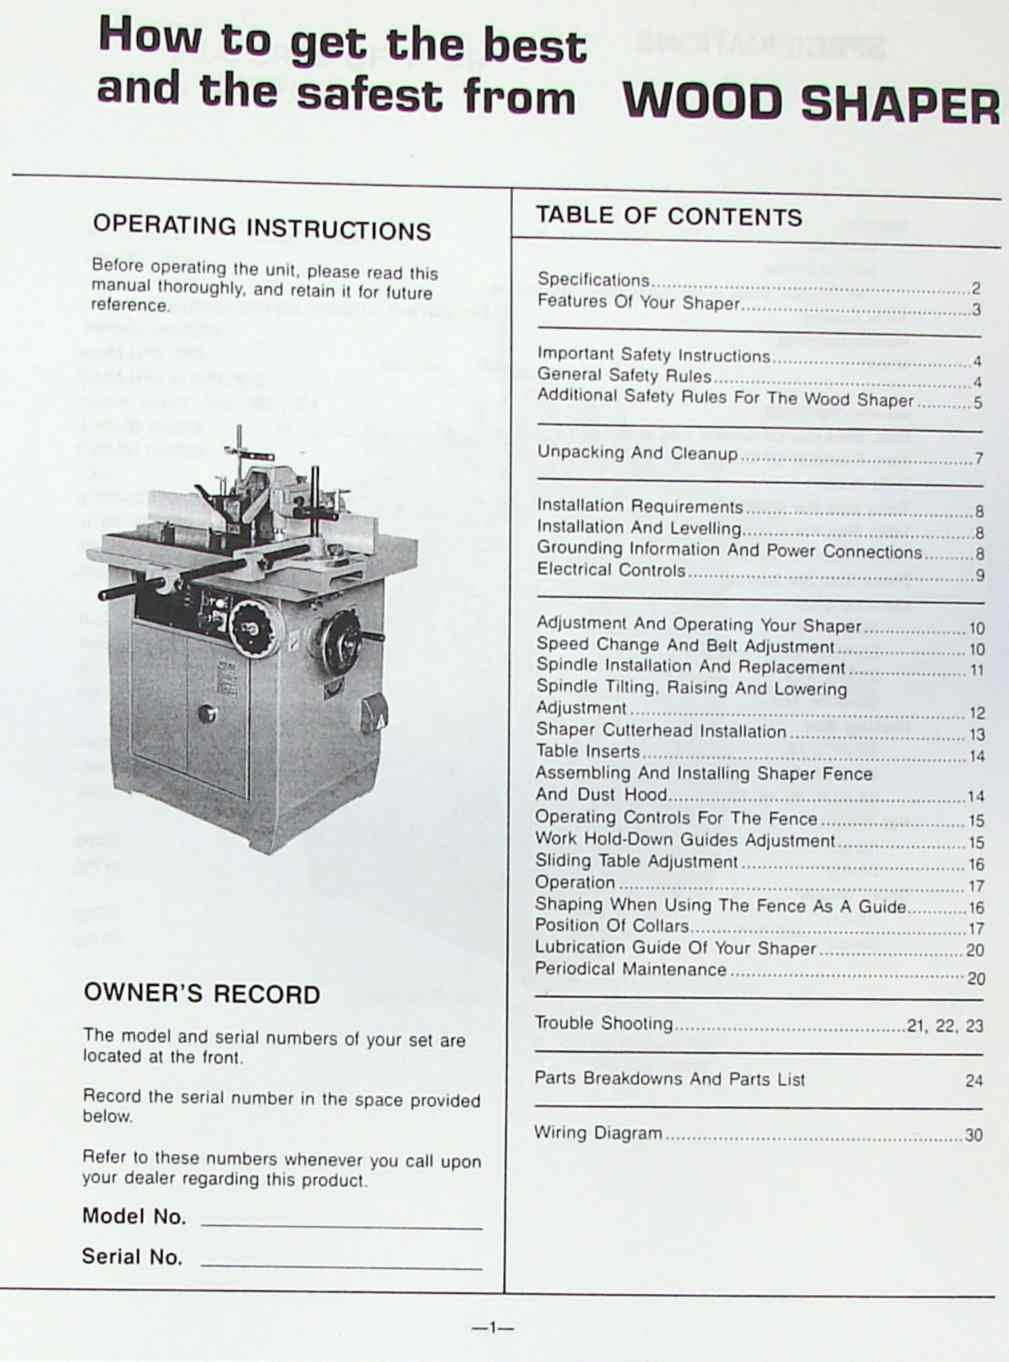 Jet Shaper Wiring Diagram Libraries Lathe Electrical Symbol Libraryjet Asian Ss 511 512 Large Wood Spindle Operator